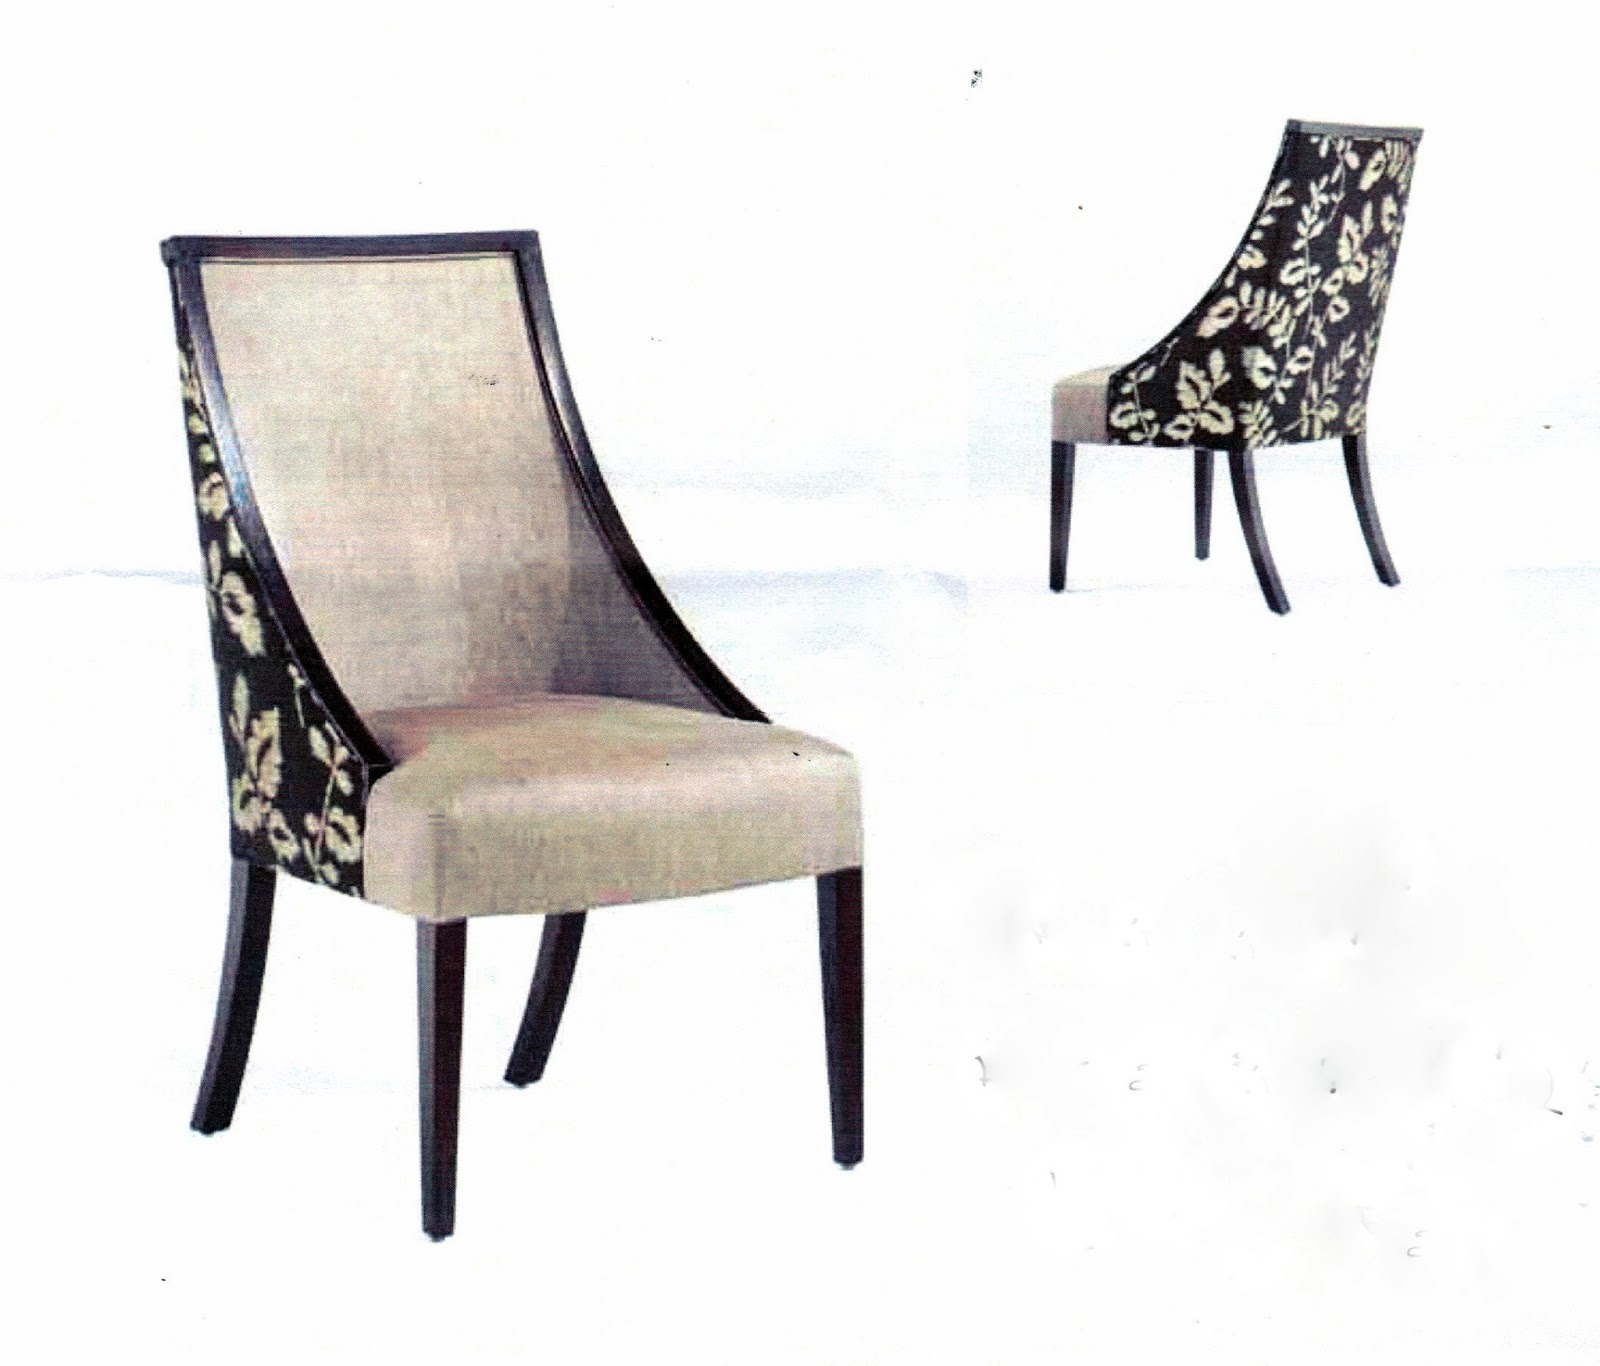 Robin Lechner Interior Designs What Room Is Considered As: Robin Lechner Interior Designs: THE IDEAL CHAIR